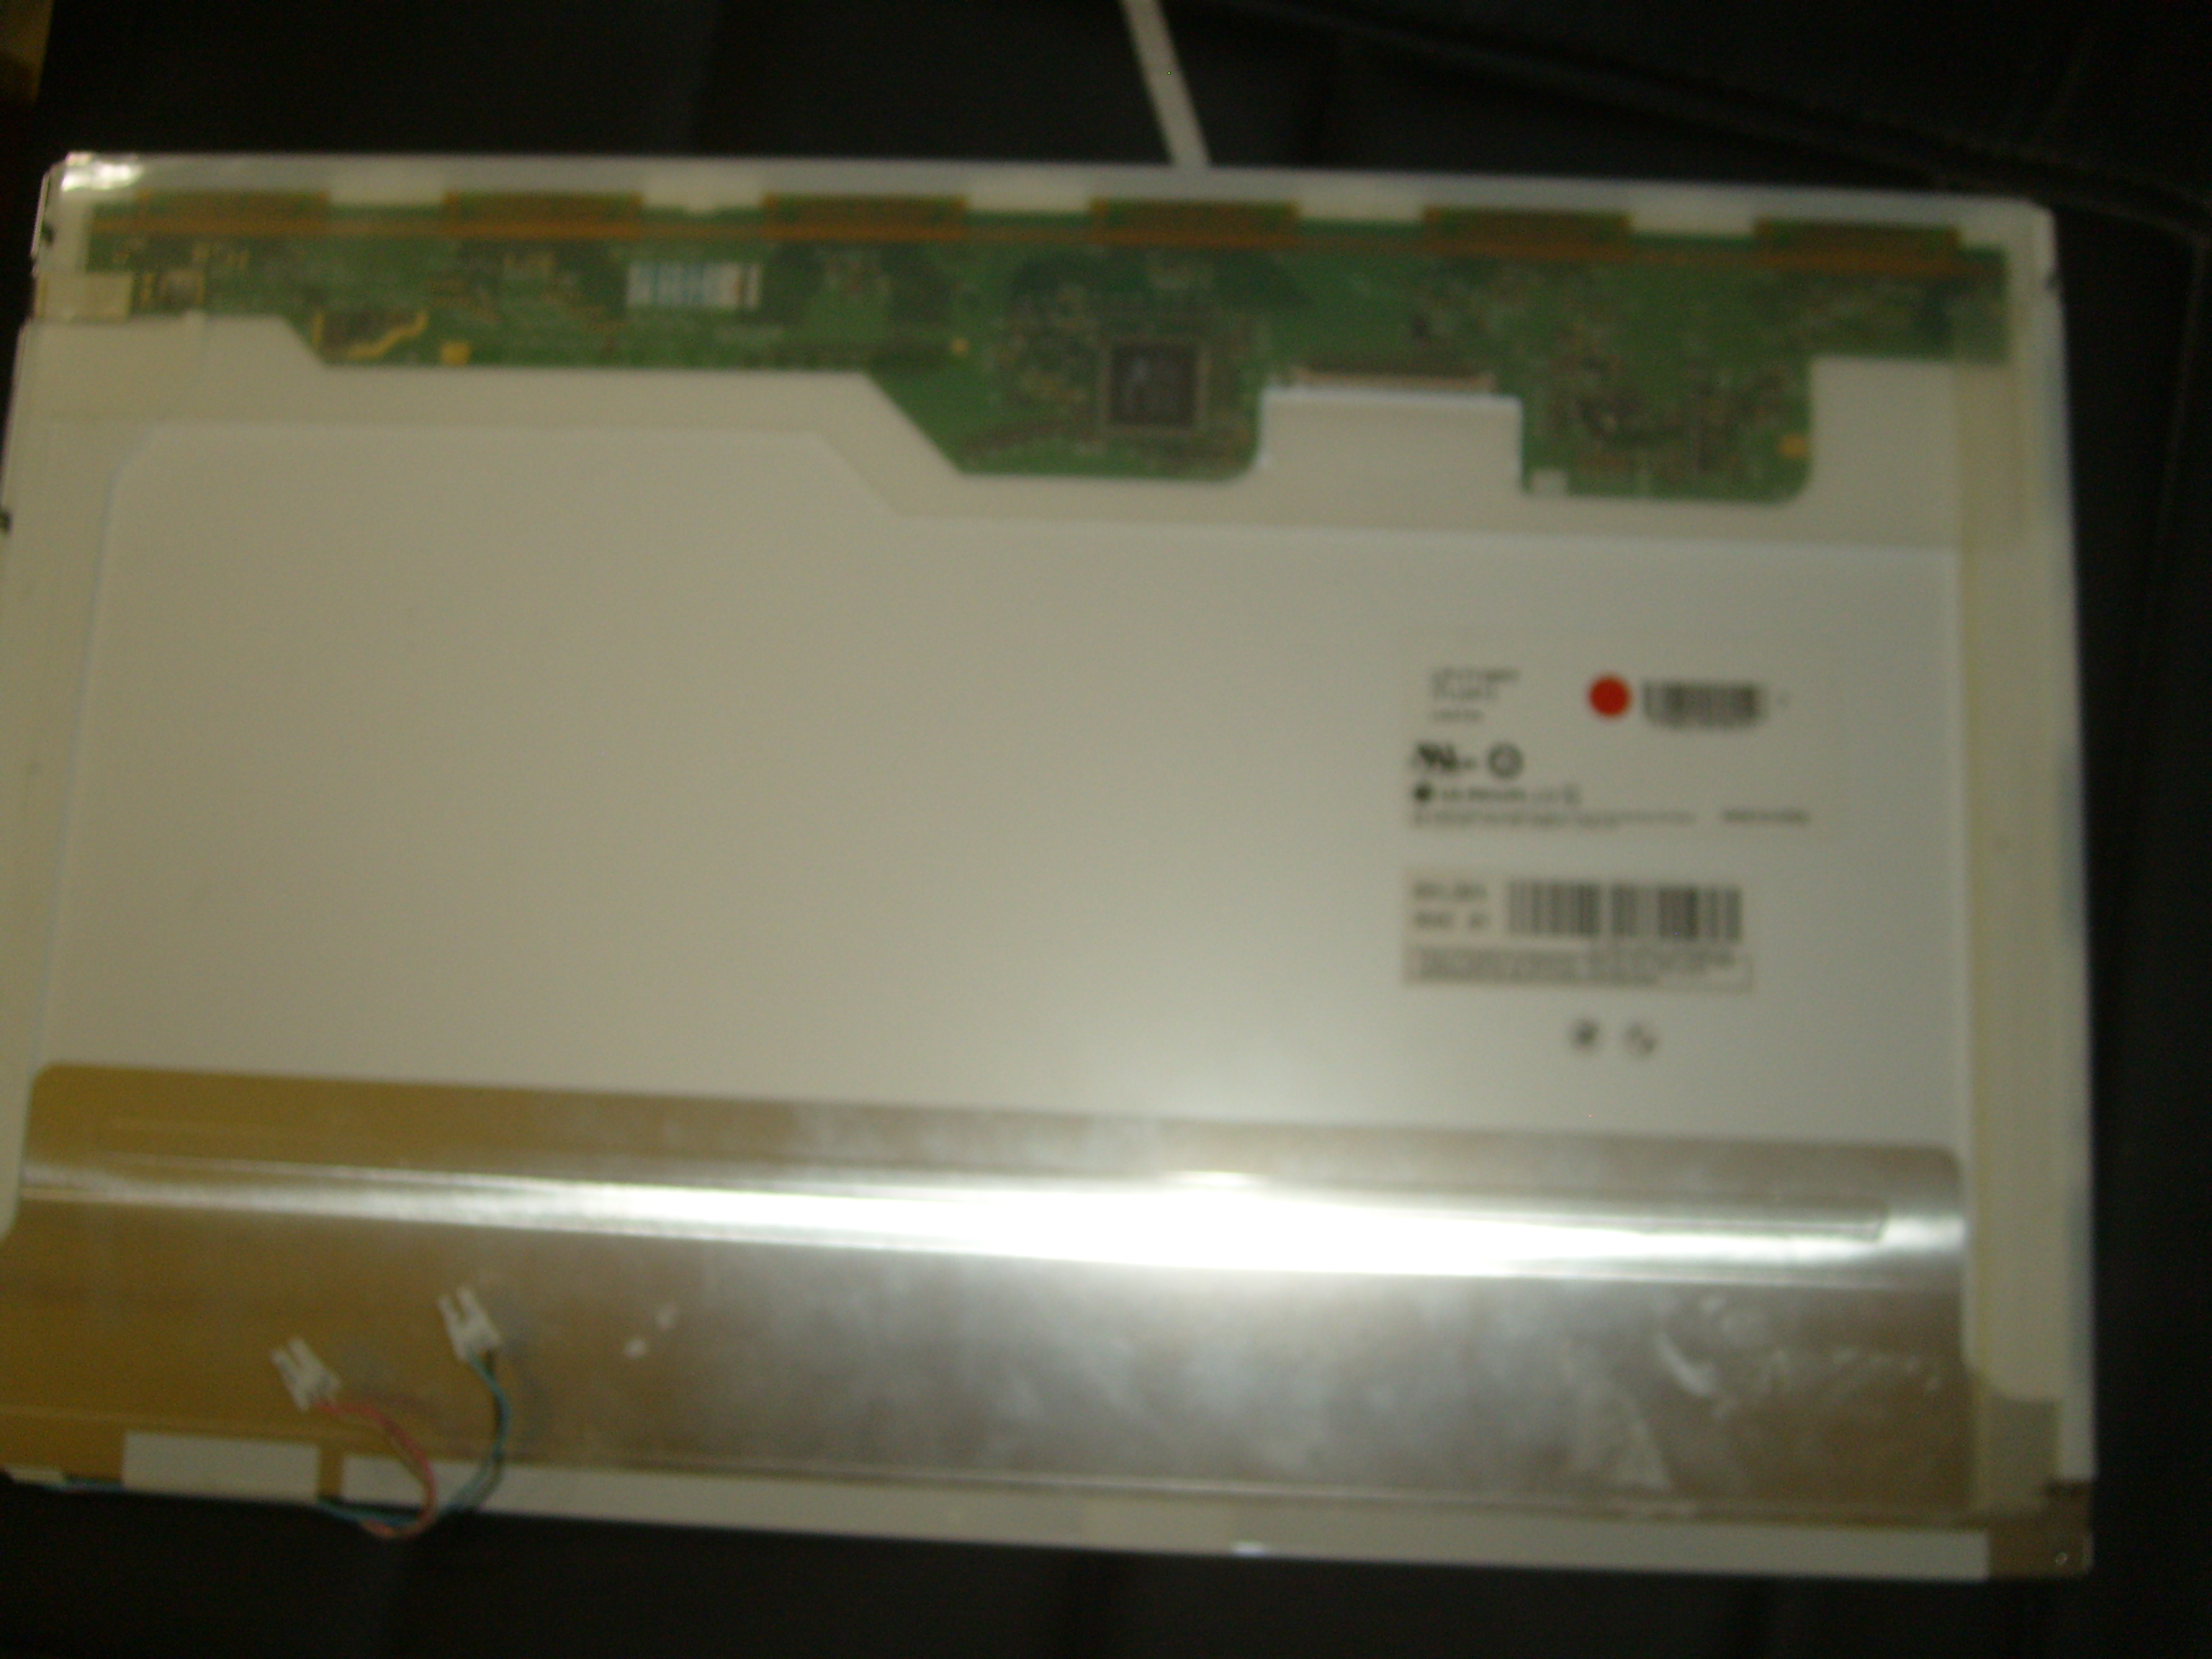 Sony LCD Panel lg philips LP171WP7-TLA1 1-802-112-21 180211221